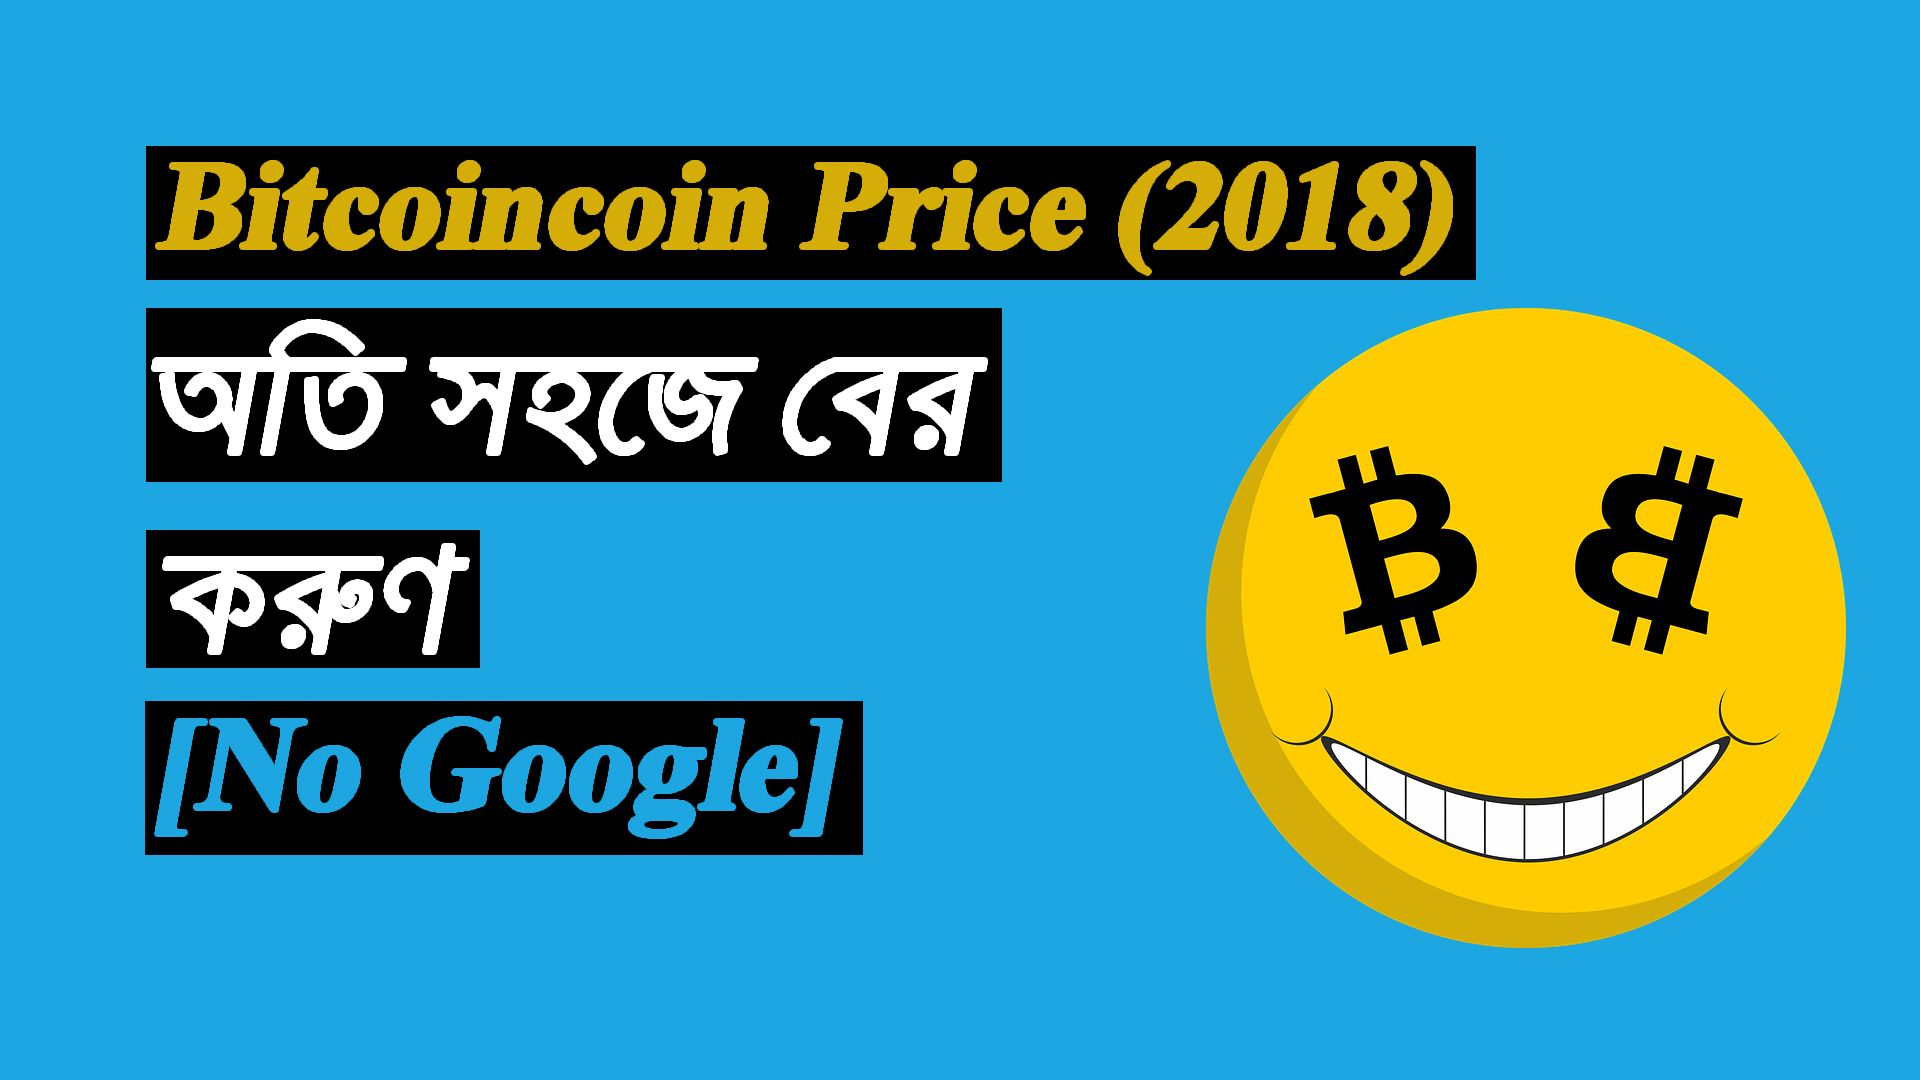 Bitcoin Price: How do I calculate the value of bitcoins in my native currency? In 2018 [Bangla ...